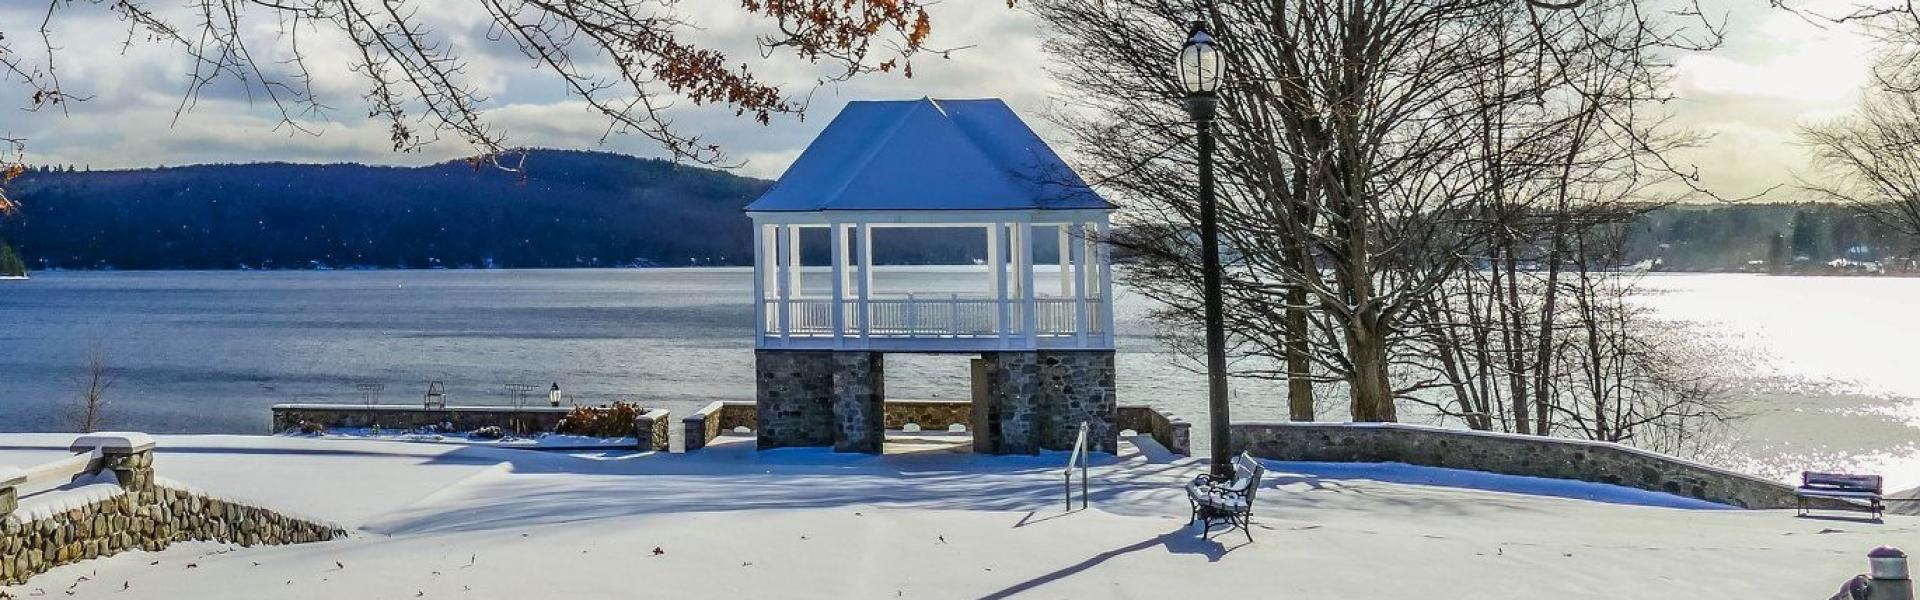 Bandstand winter